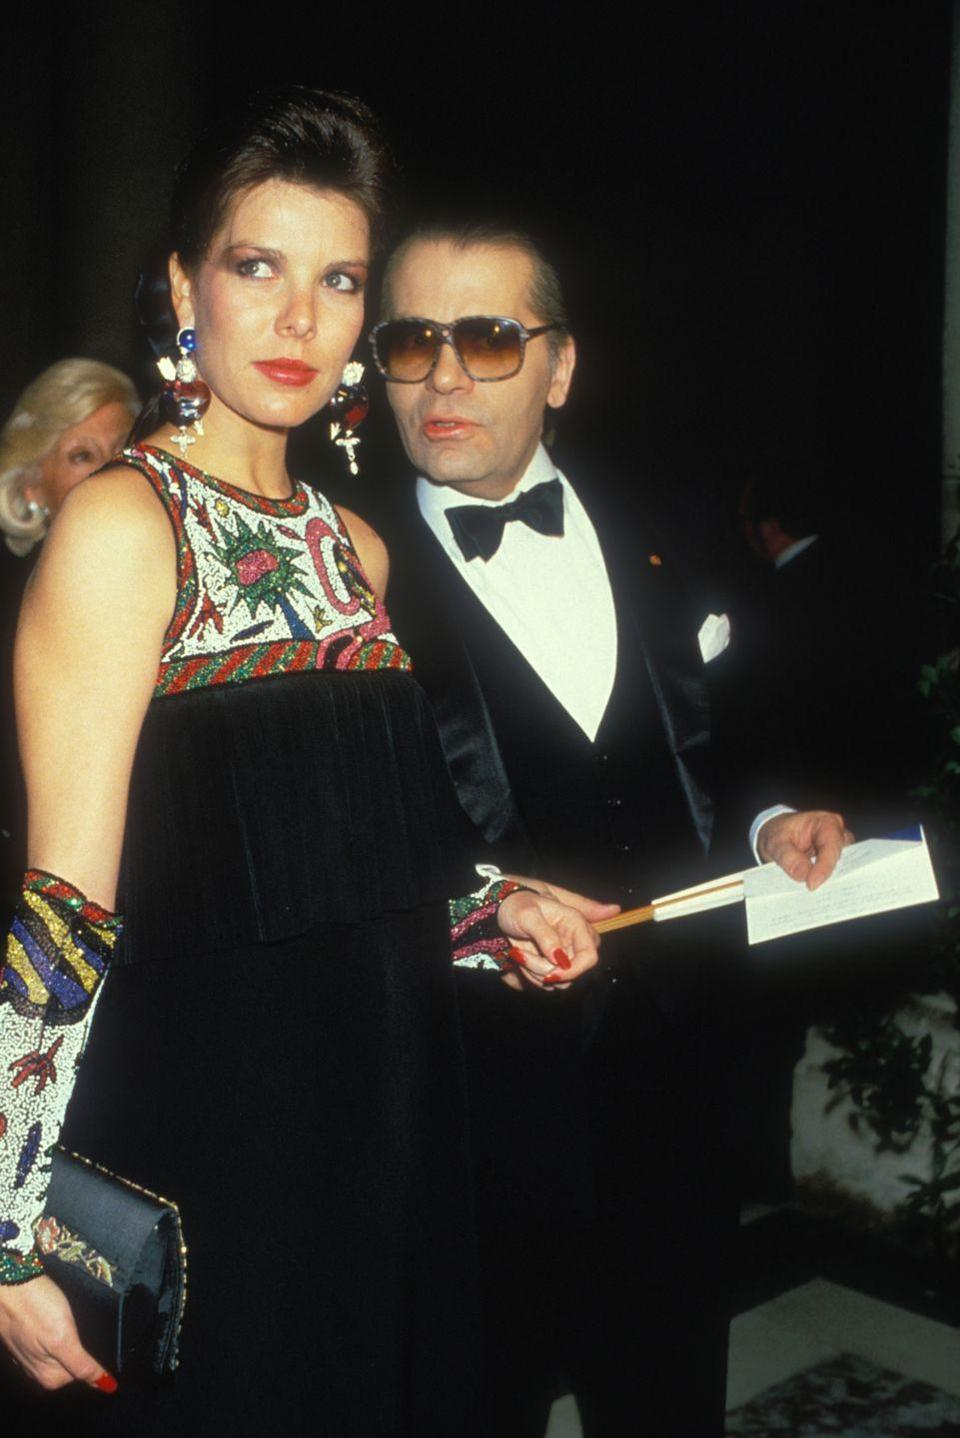 <p>Princess Caroline was famously a longtime friend and champion of Chanel designer Karl Lagerfeld. Here they were photographed together at a party at Versailles in 1986.</p>